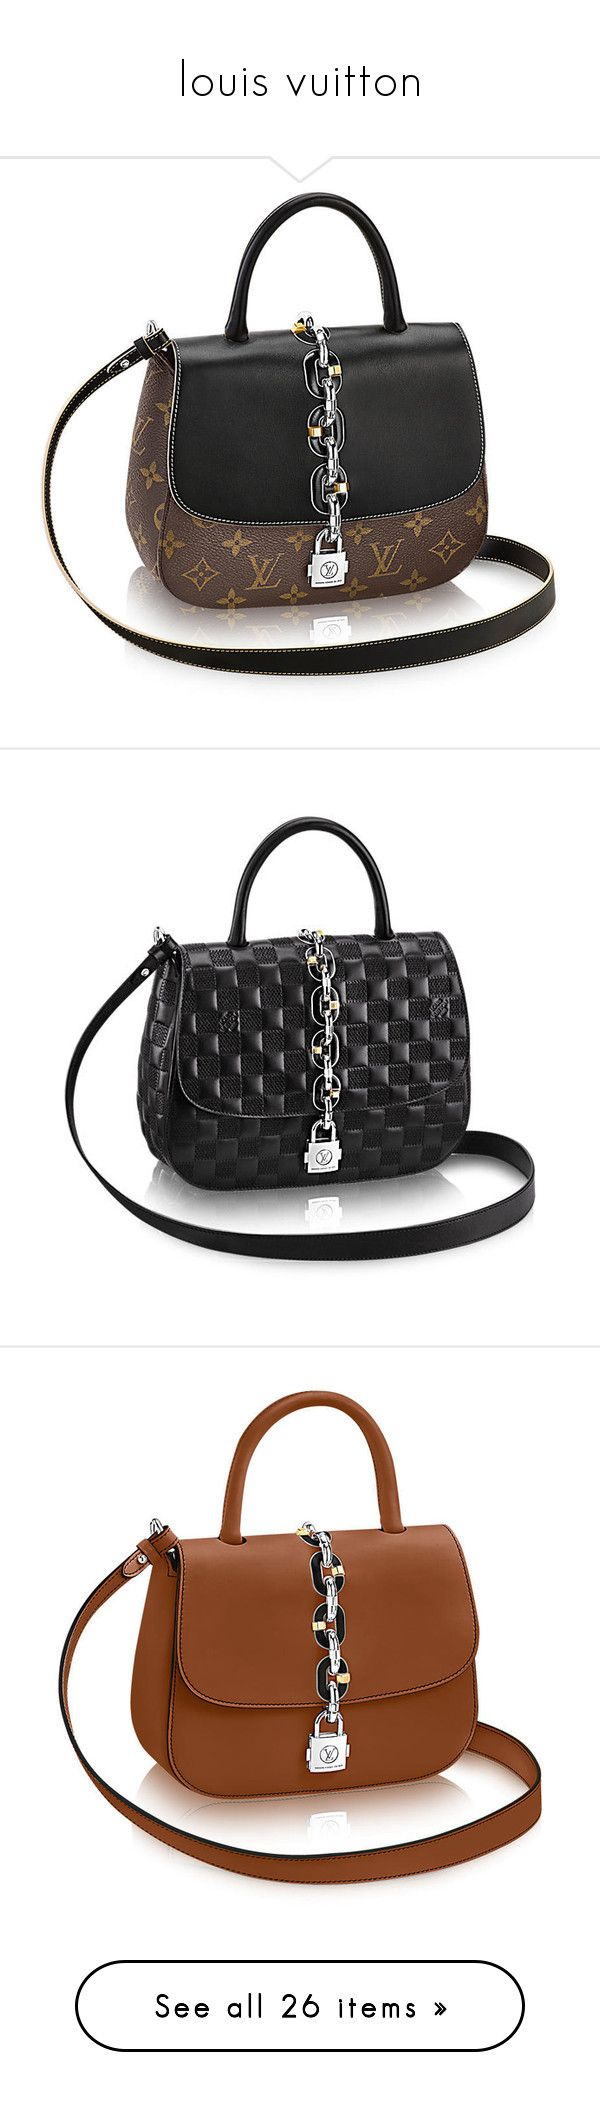 """louis vuitton"" by janysoares28 ❤ liked on Polyvore featuring bags, canvas bag, fake bags, chain bag, monogram canvas bag, monogrammed bags, handbags, faux-leather handbags, chain handbags and nautical purse"